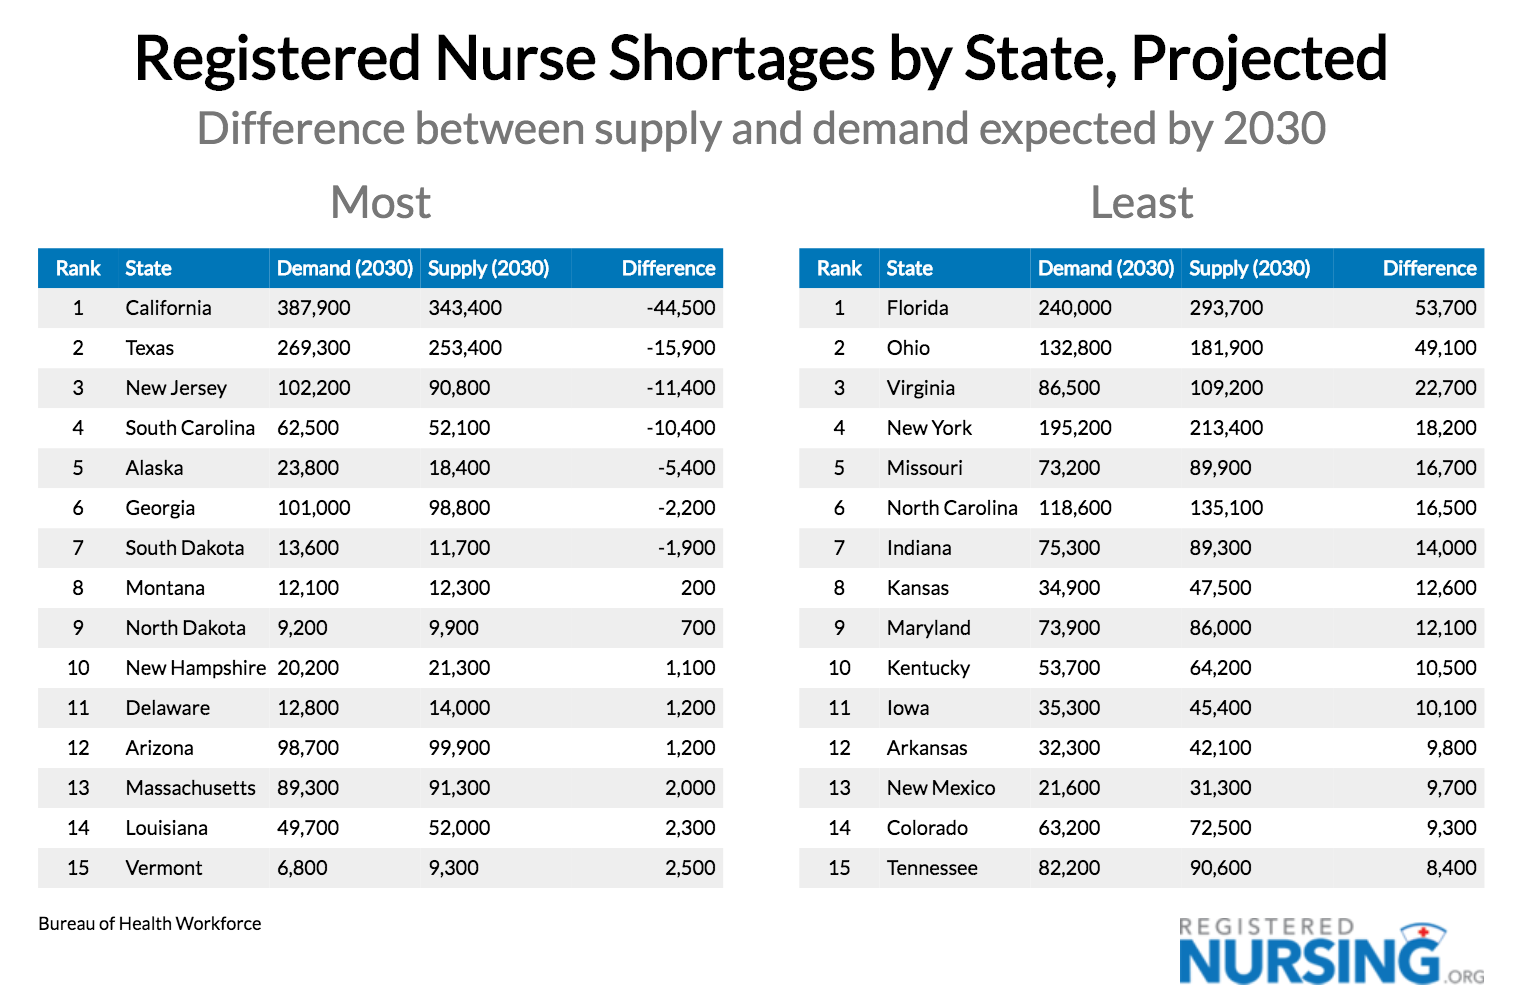 RN Shortages by State, Expected by 2030